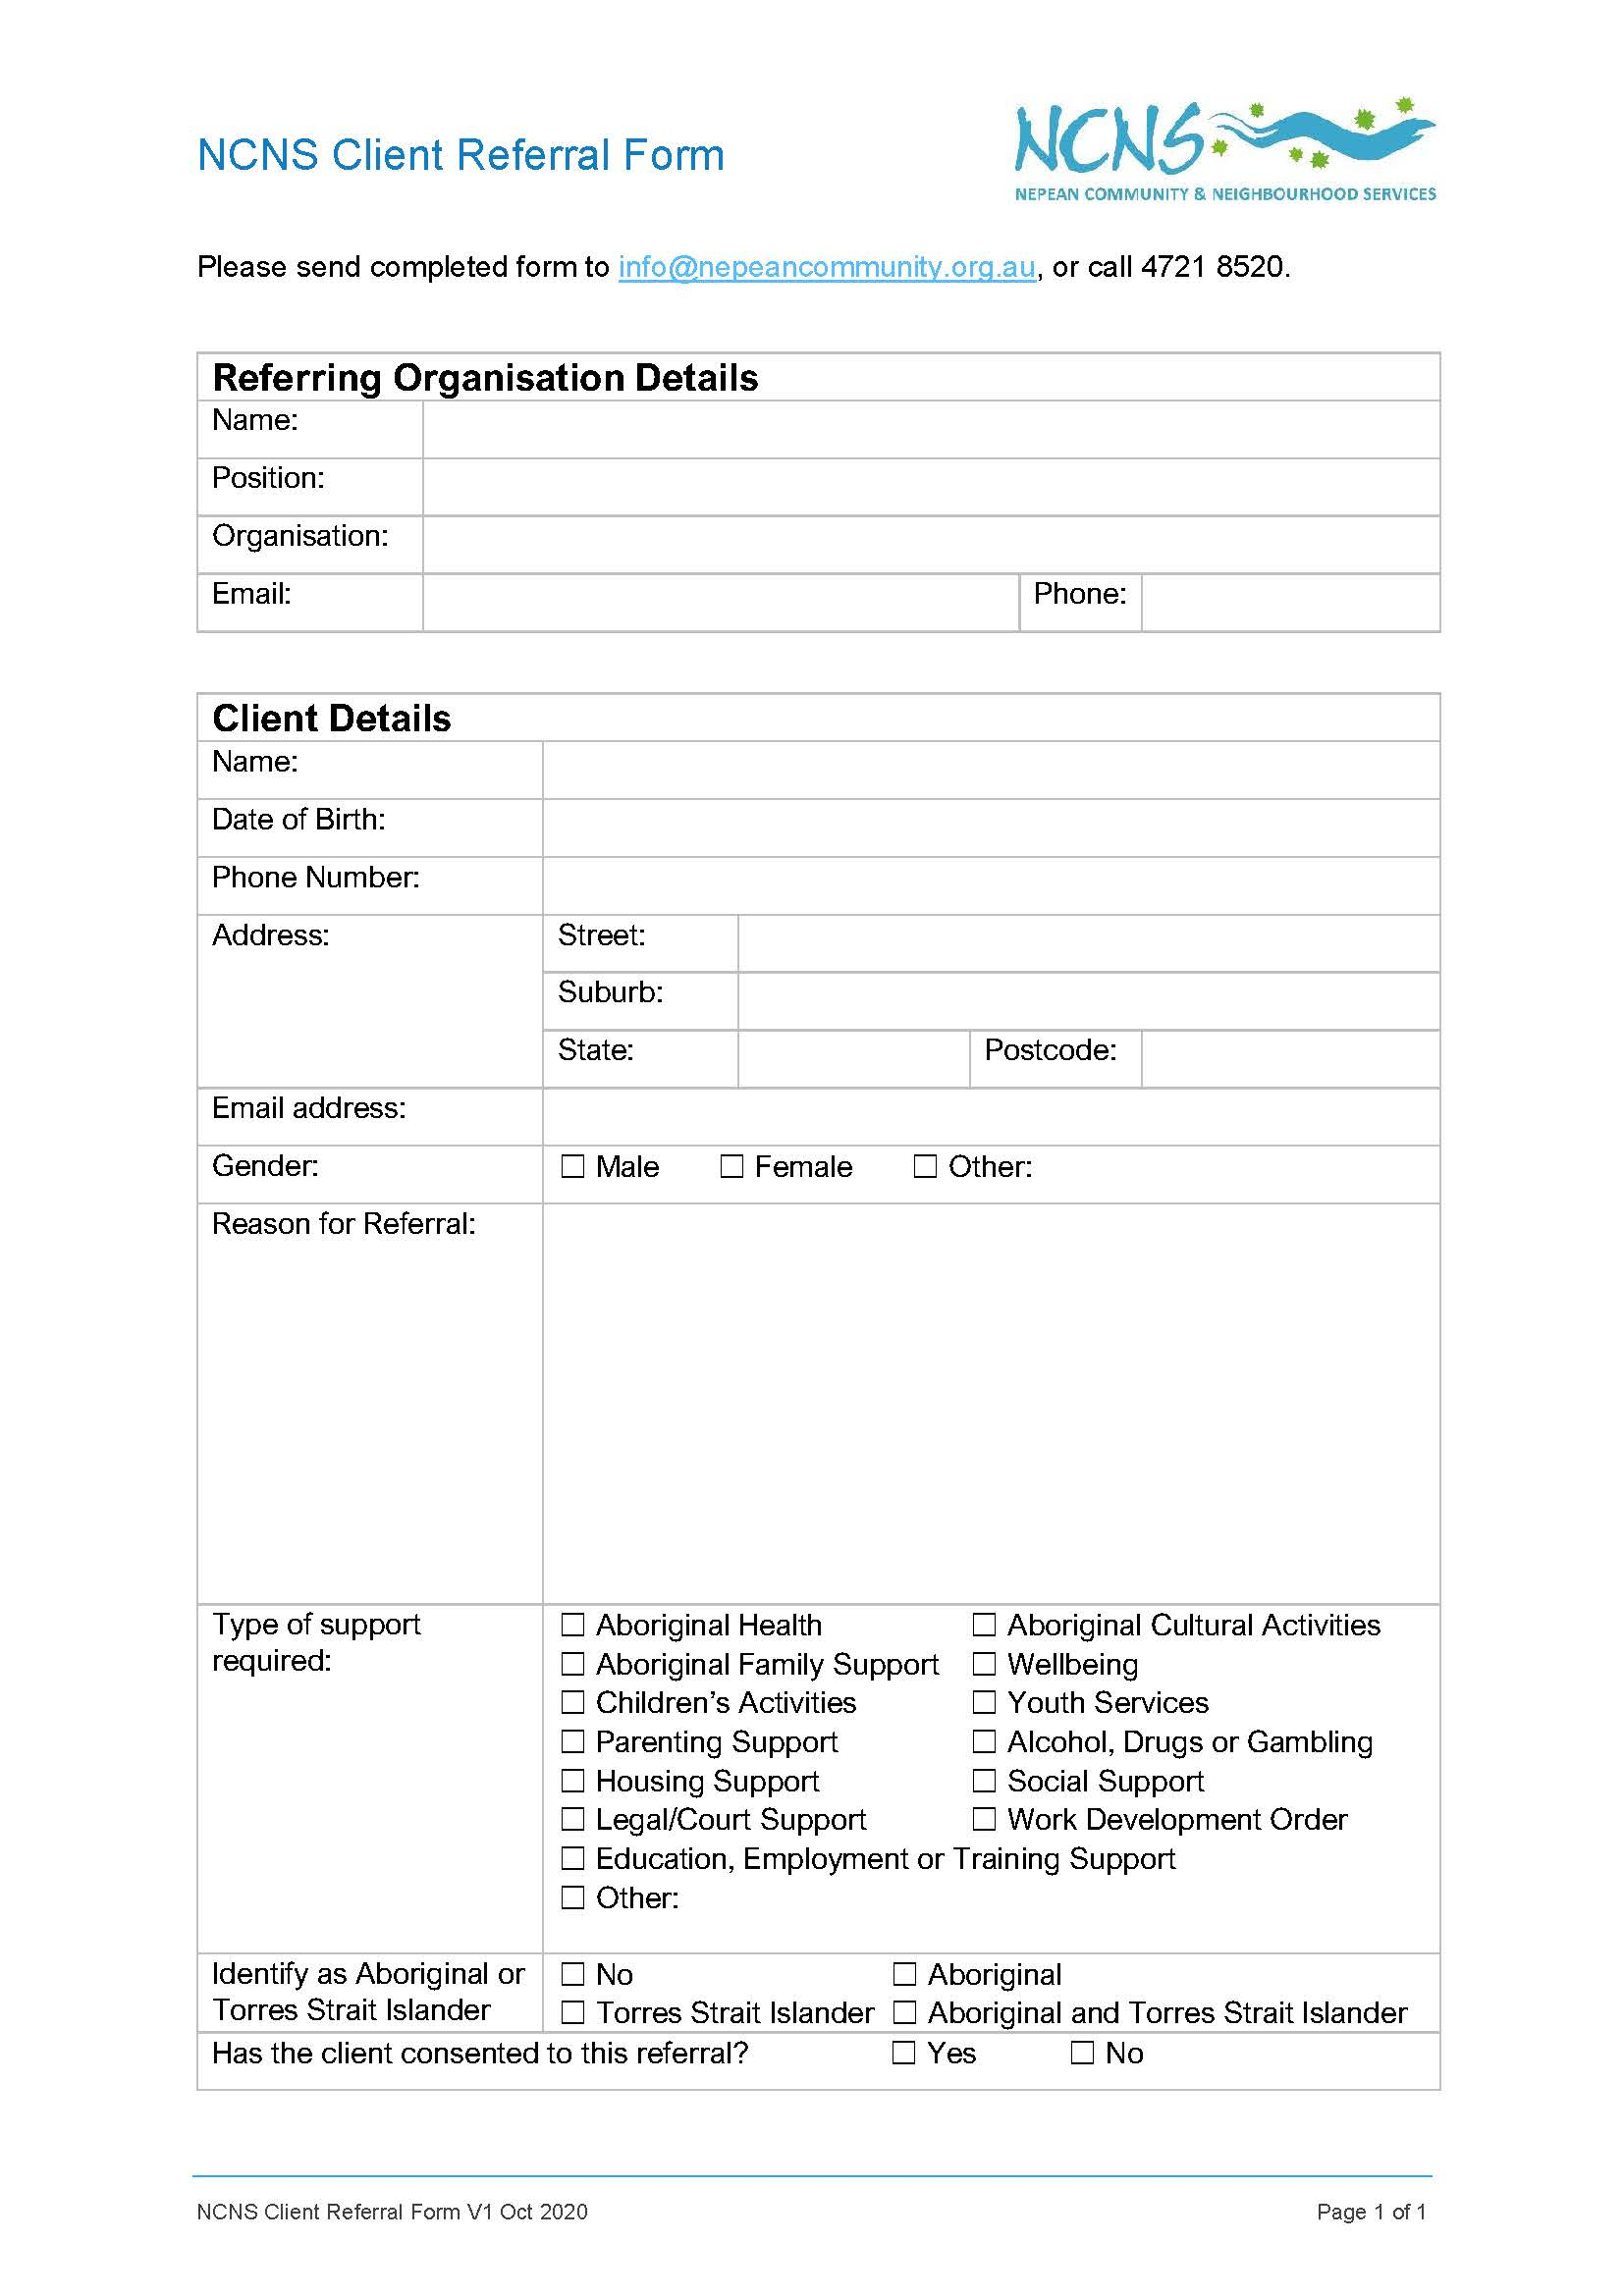 NCNS Client Referral Form